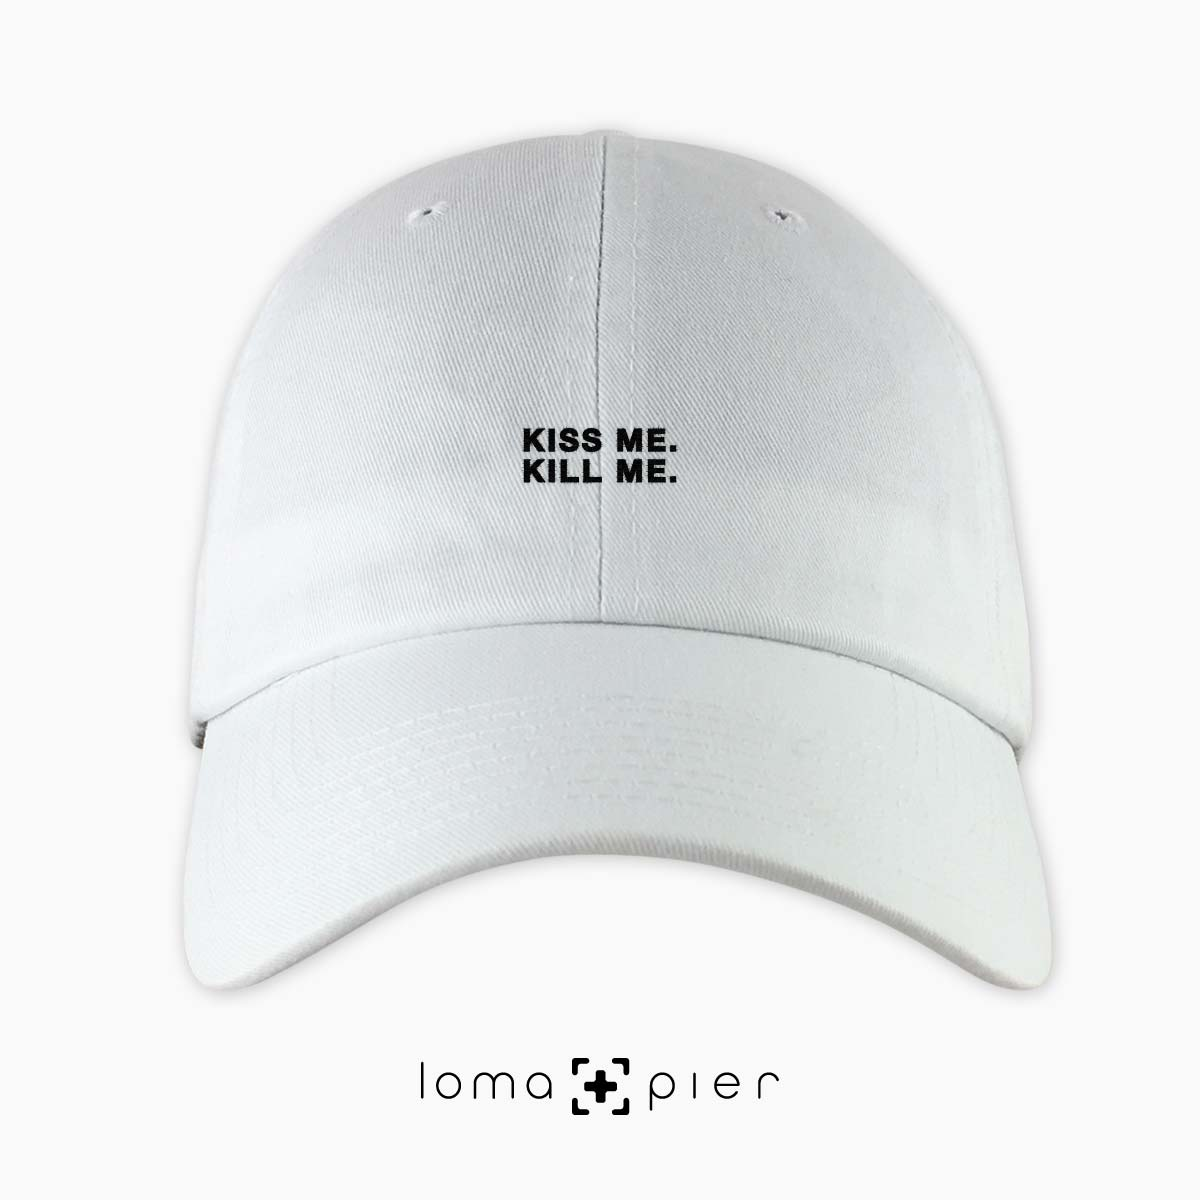 KISS ME. KILL ME. hat by loma+pier hat store 91c807bc0a7